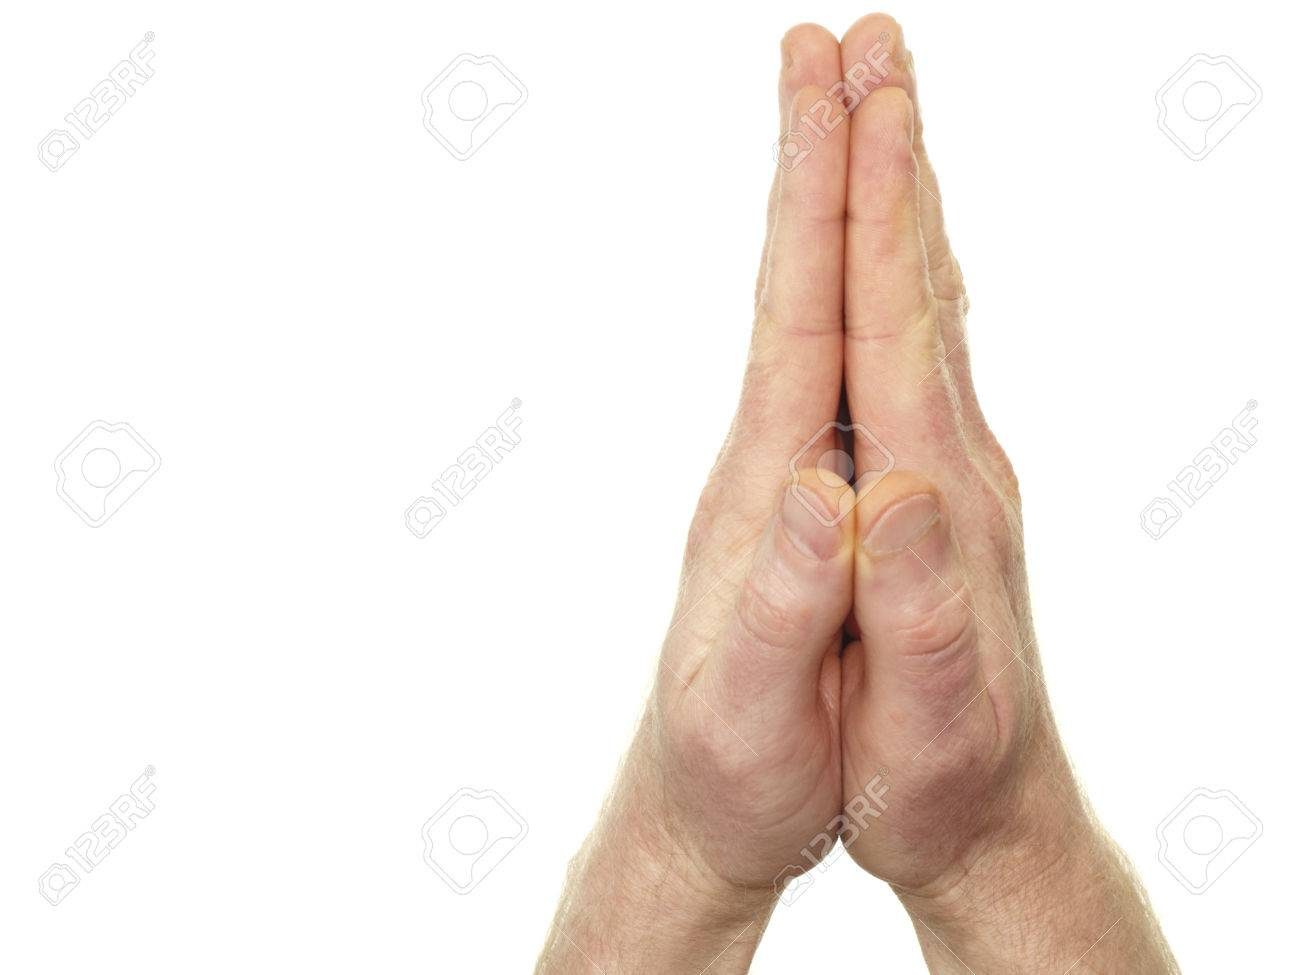 One caucasian adult man with his hands placed together in prayer in front of an isolated white background. Male hands put together in a sign of praying closeup on white. Stock Photo - 55427276